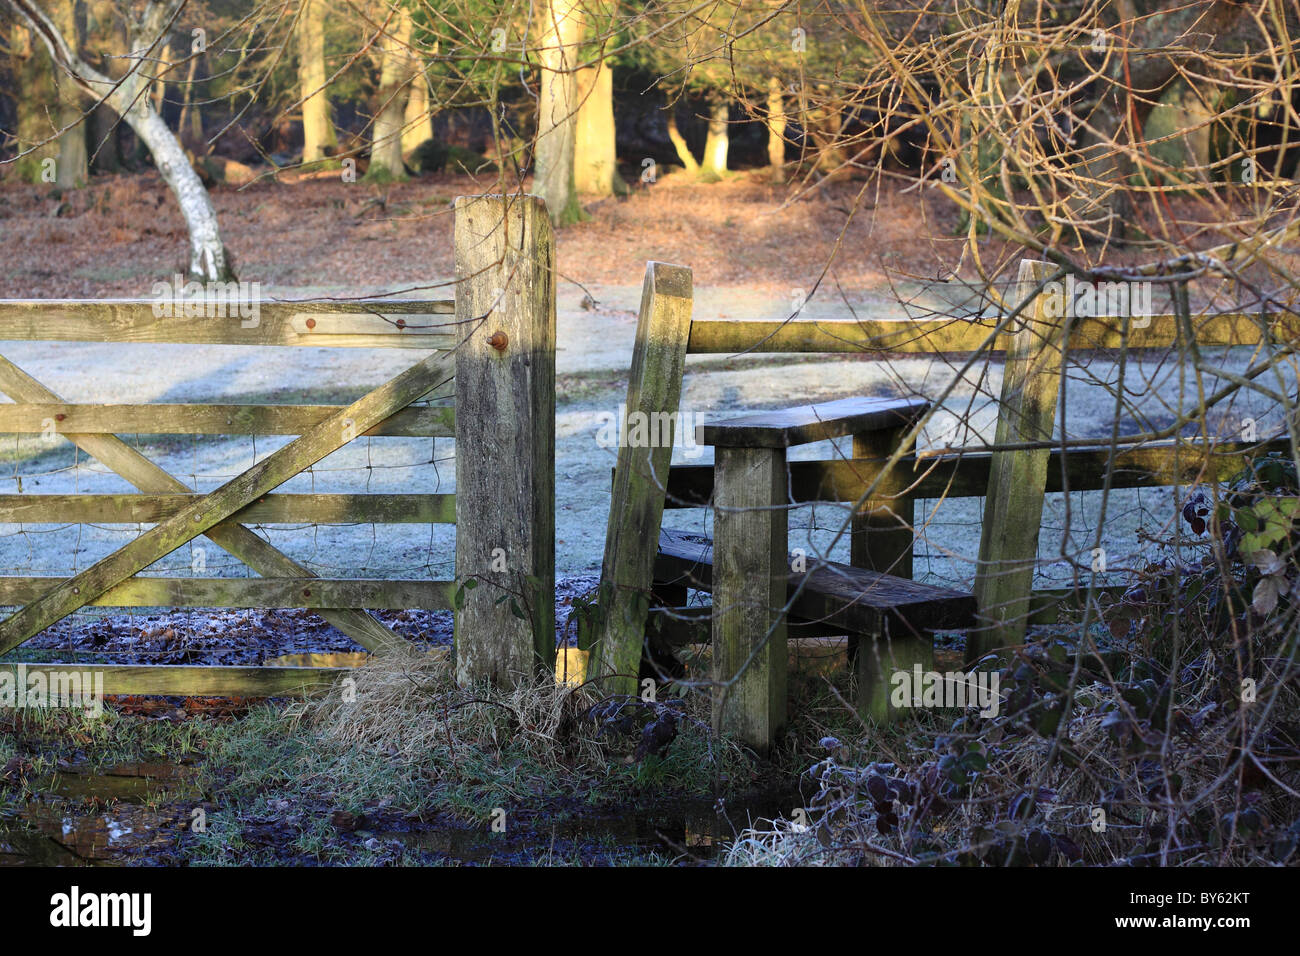 Early morning view of gate and stile in New Forest, with frost on the ground. - Stock Image